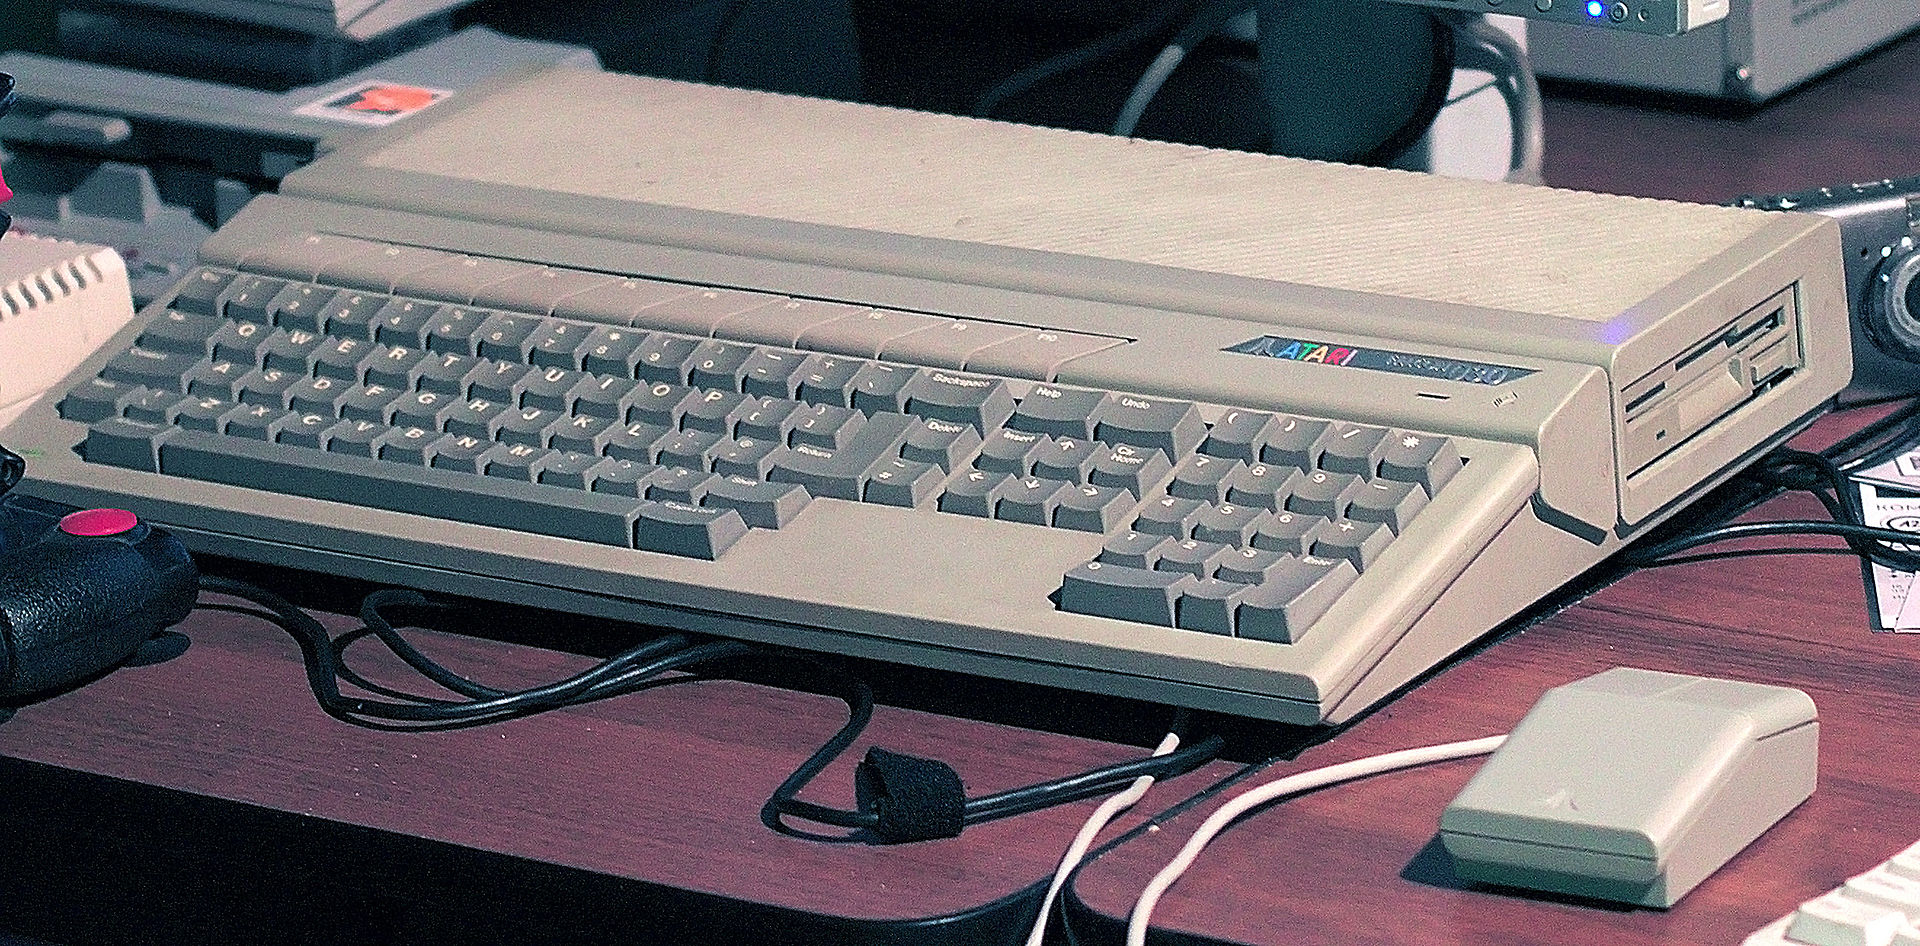 Wolf3D is compatible with the Atari Falcon and the Atari TT as well.